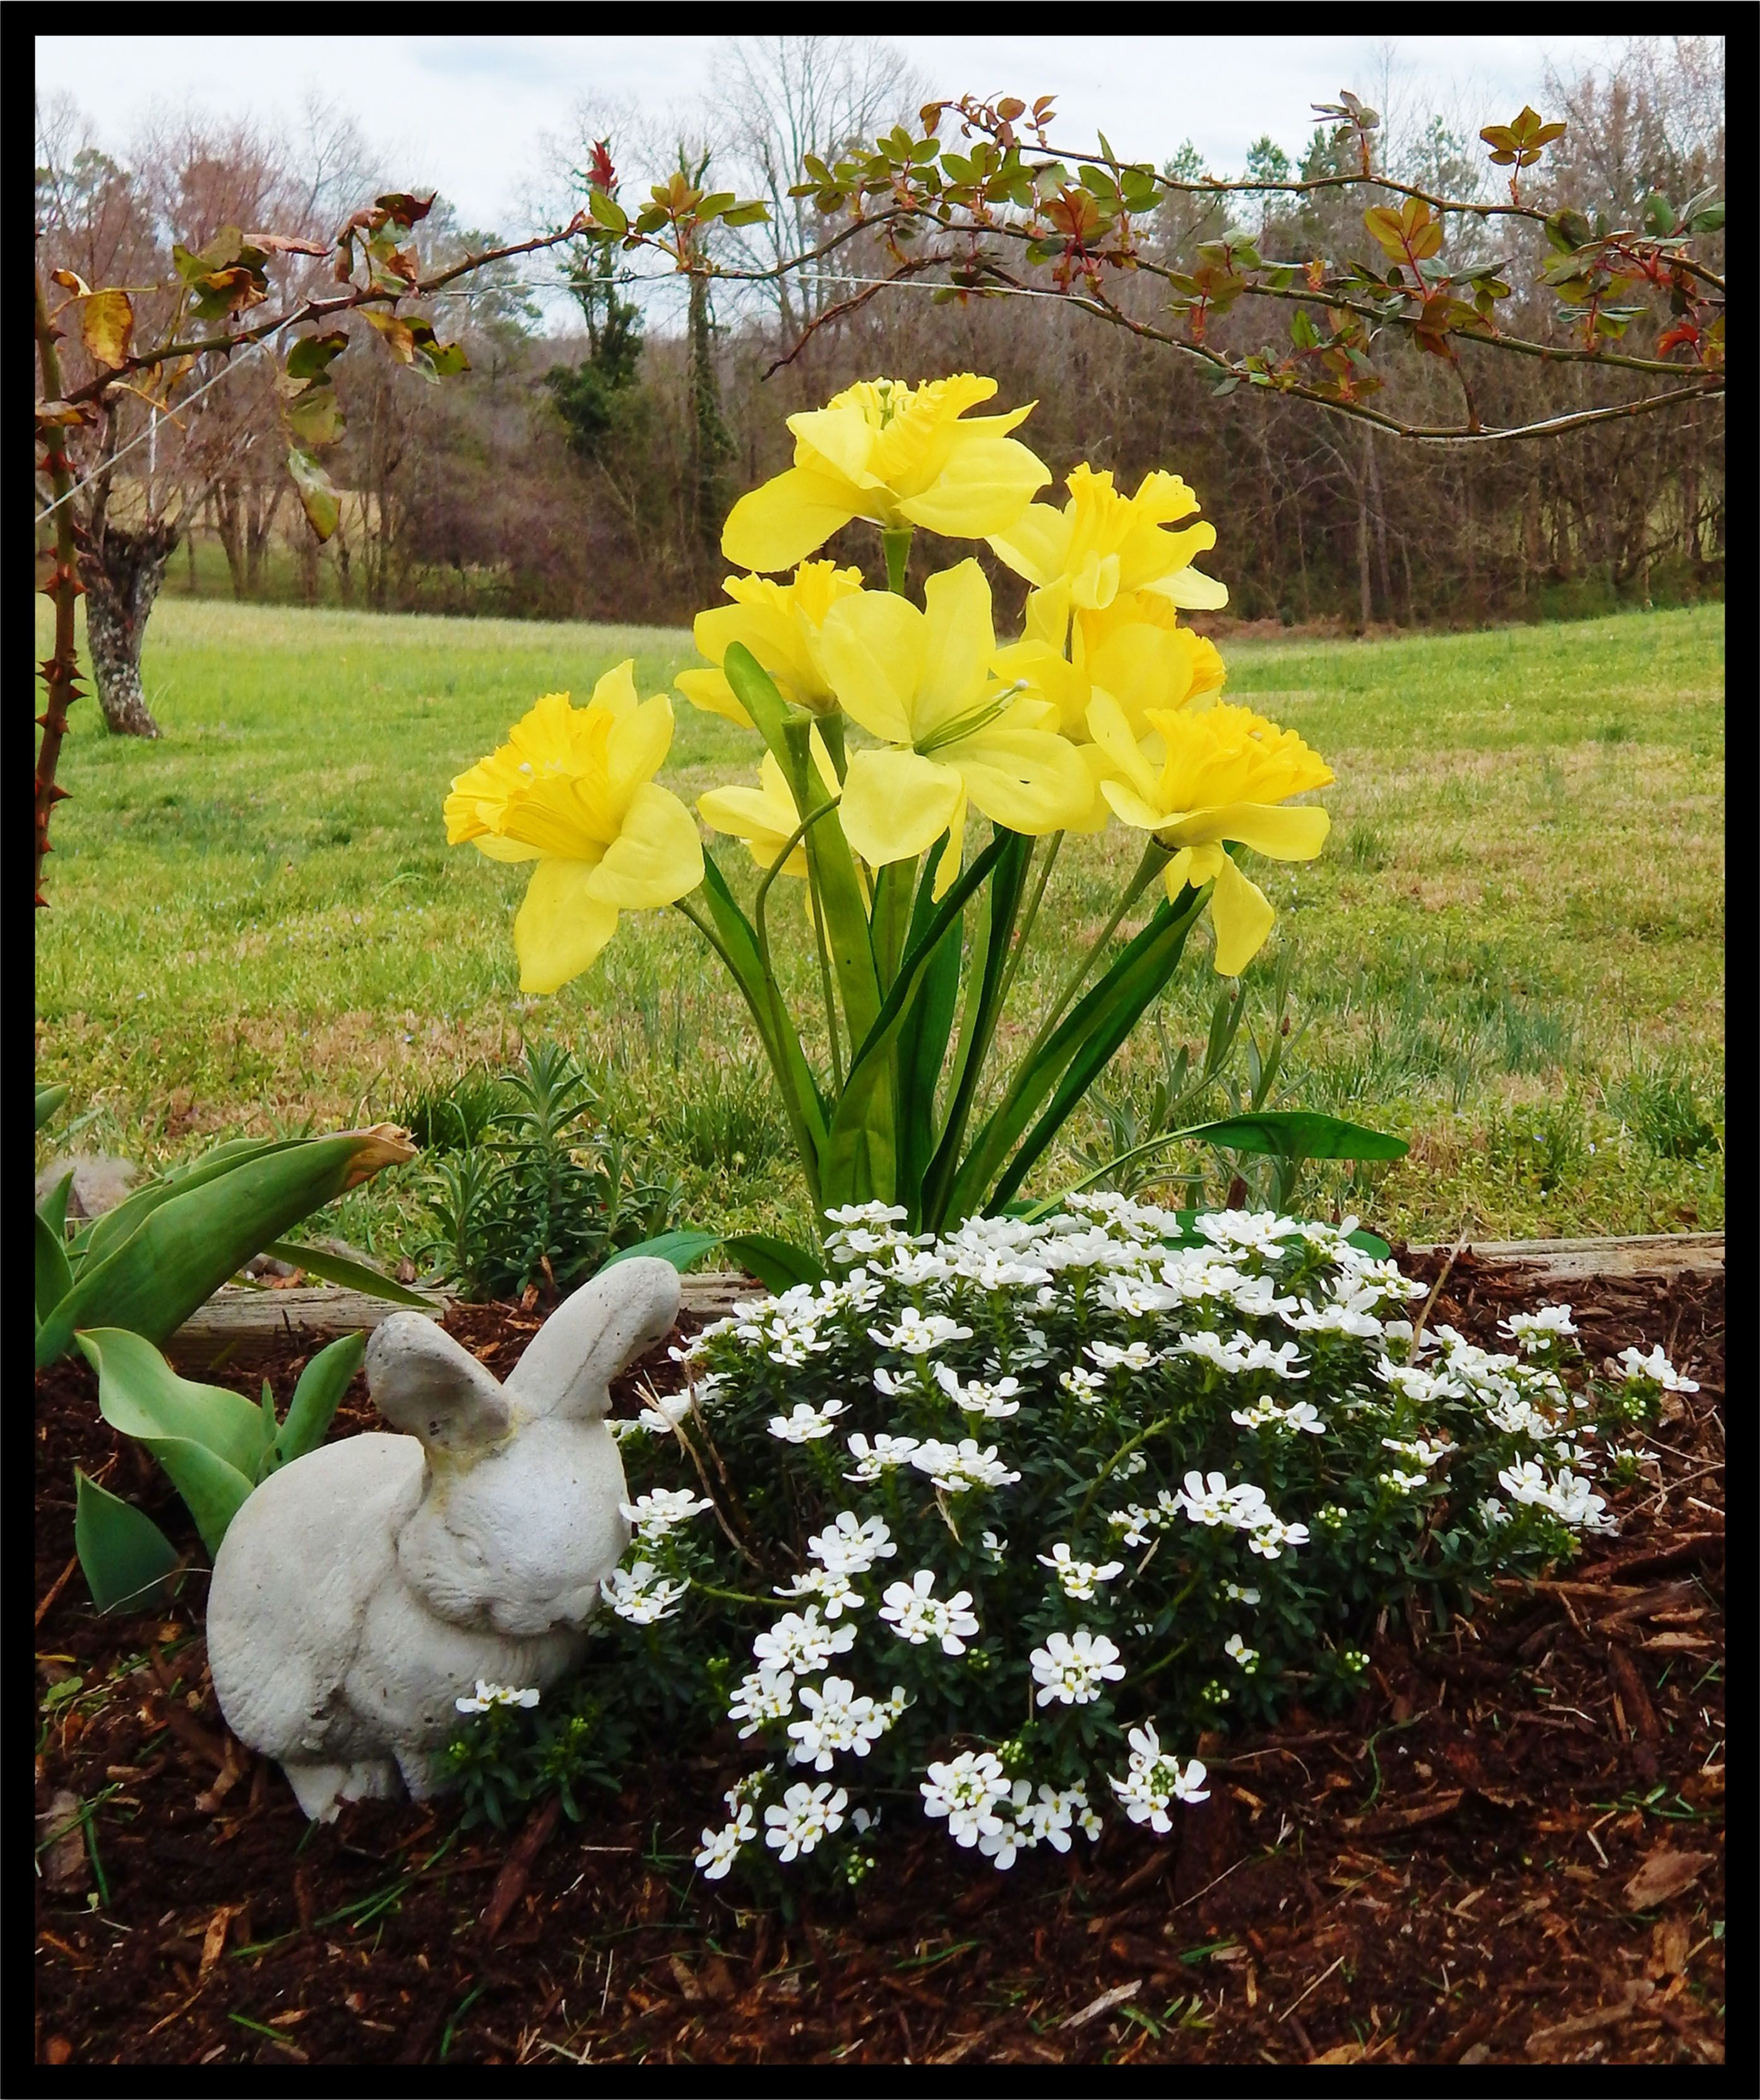 Placed Artificial Daffodils Purchased From Walmart Behind Spring Flowers Daffodils Spring Flowers Plants